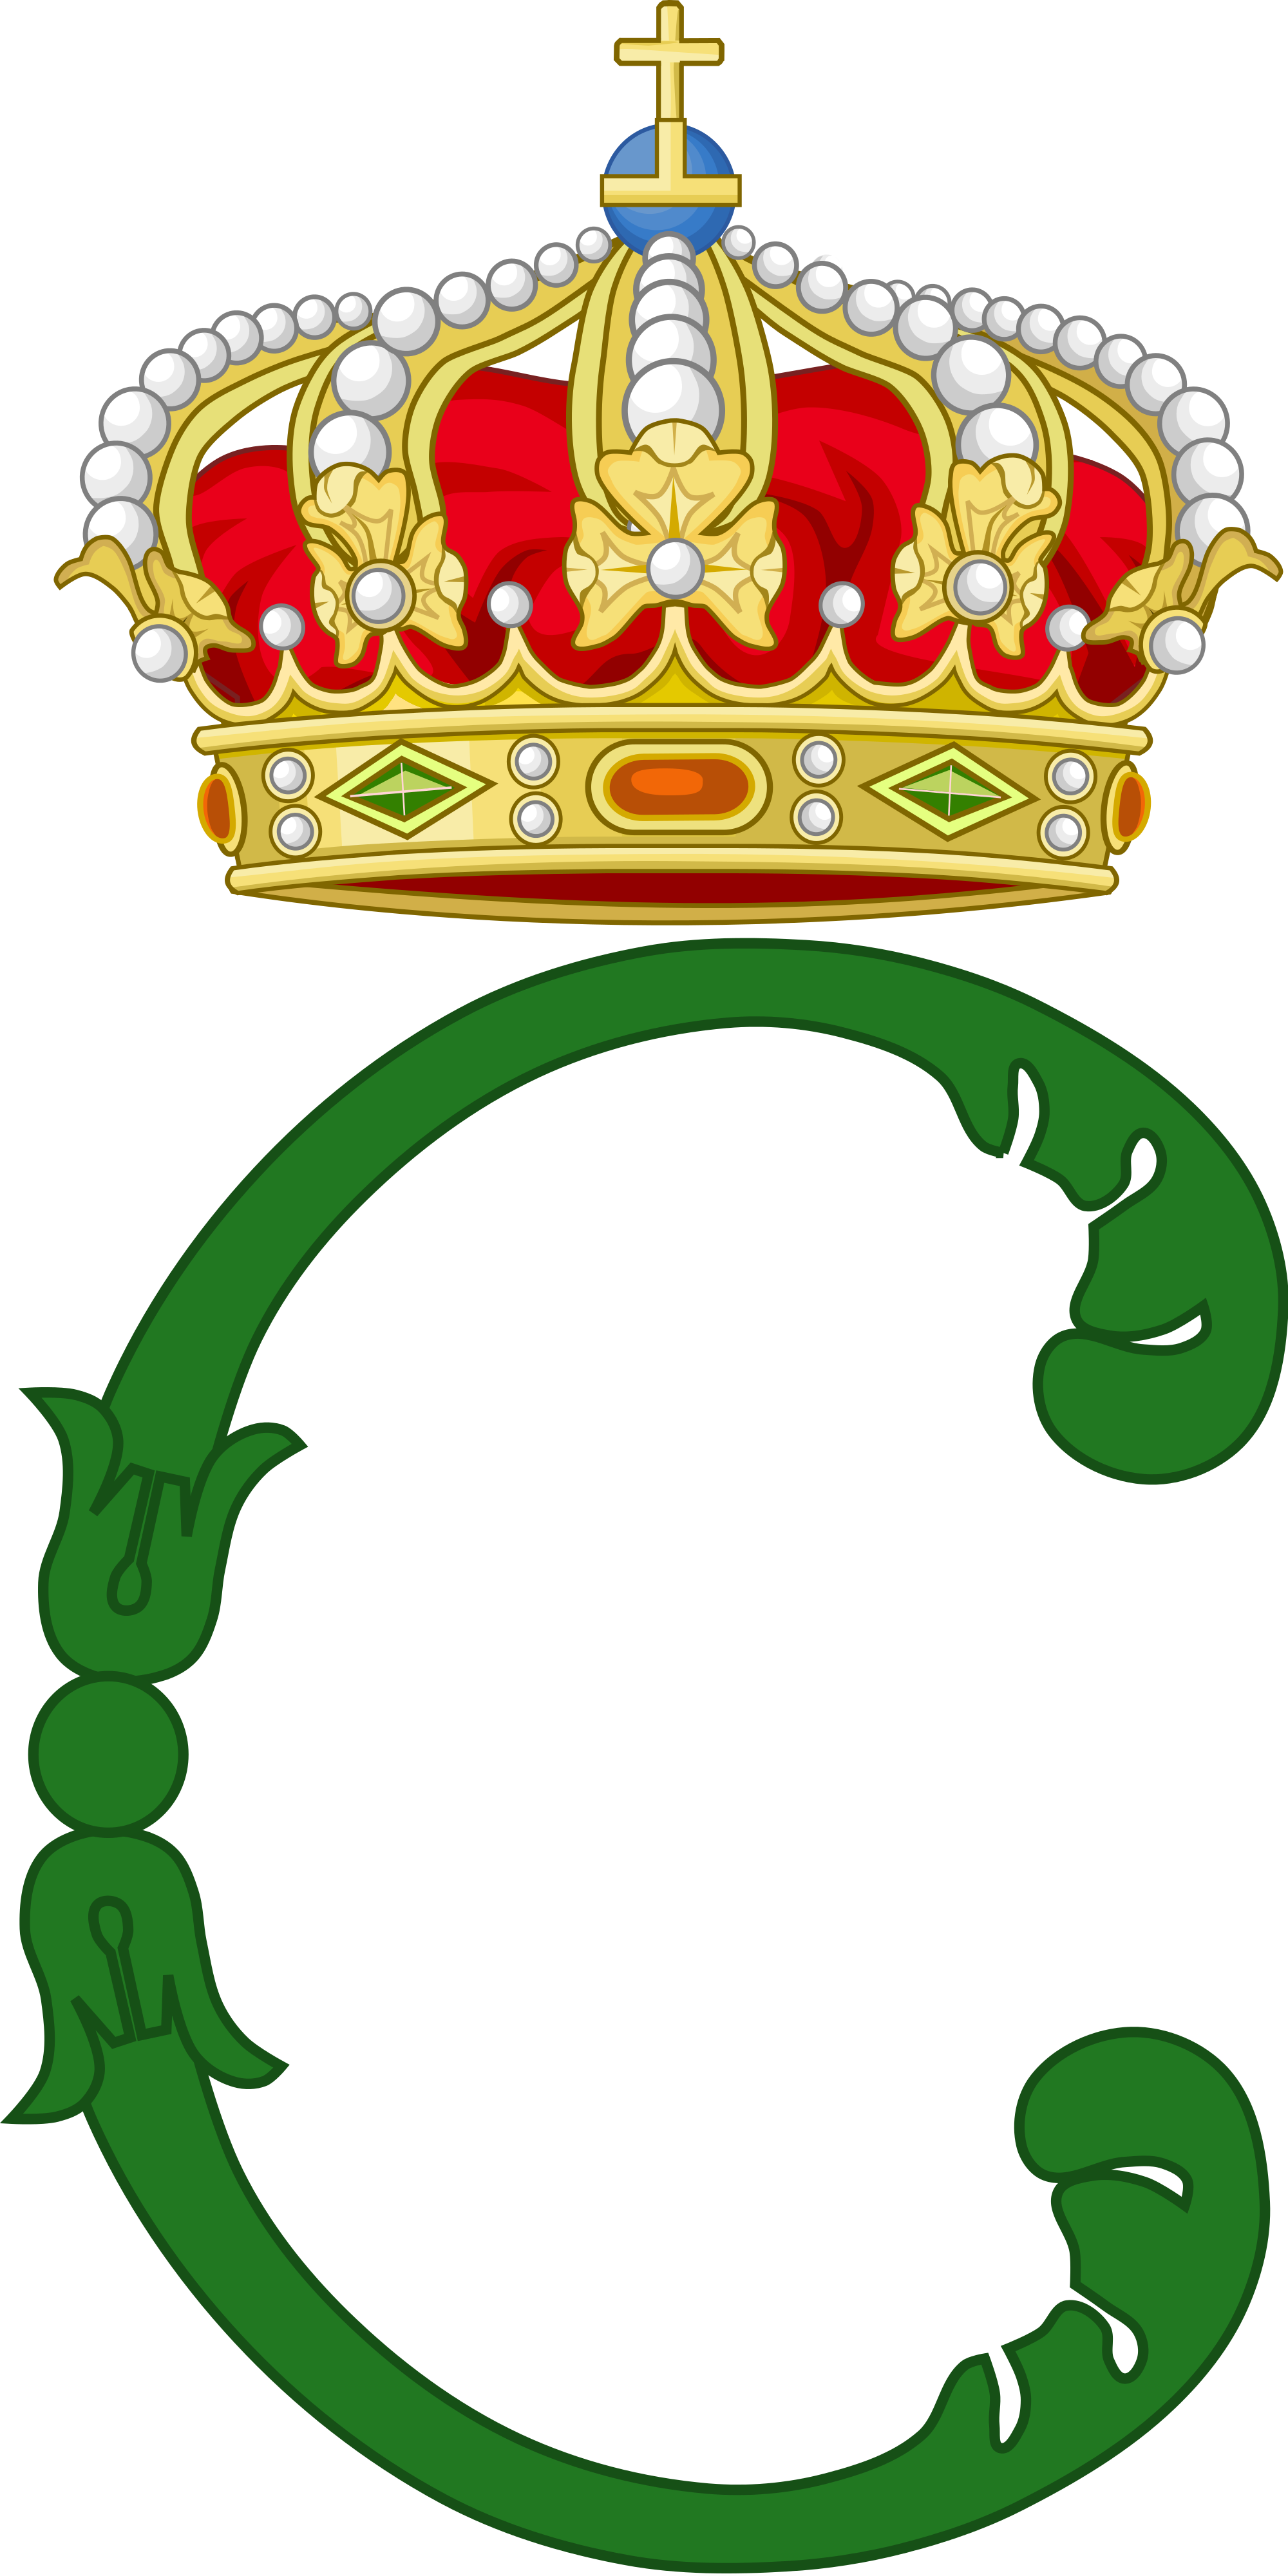 Duchess crown clipart download Charlotte Frederica of Prussia, Duchess of Saxe-Meiningen | Clip art ... download